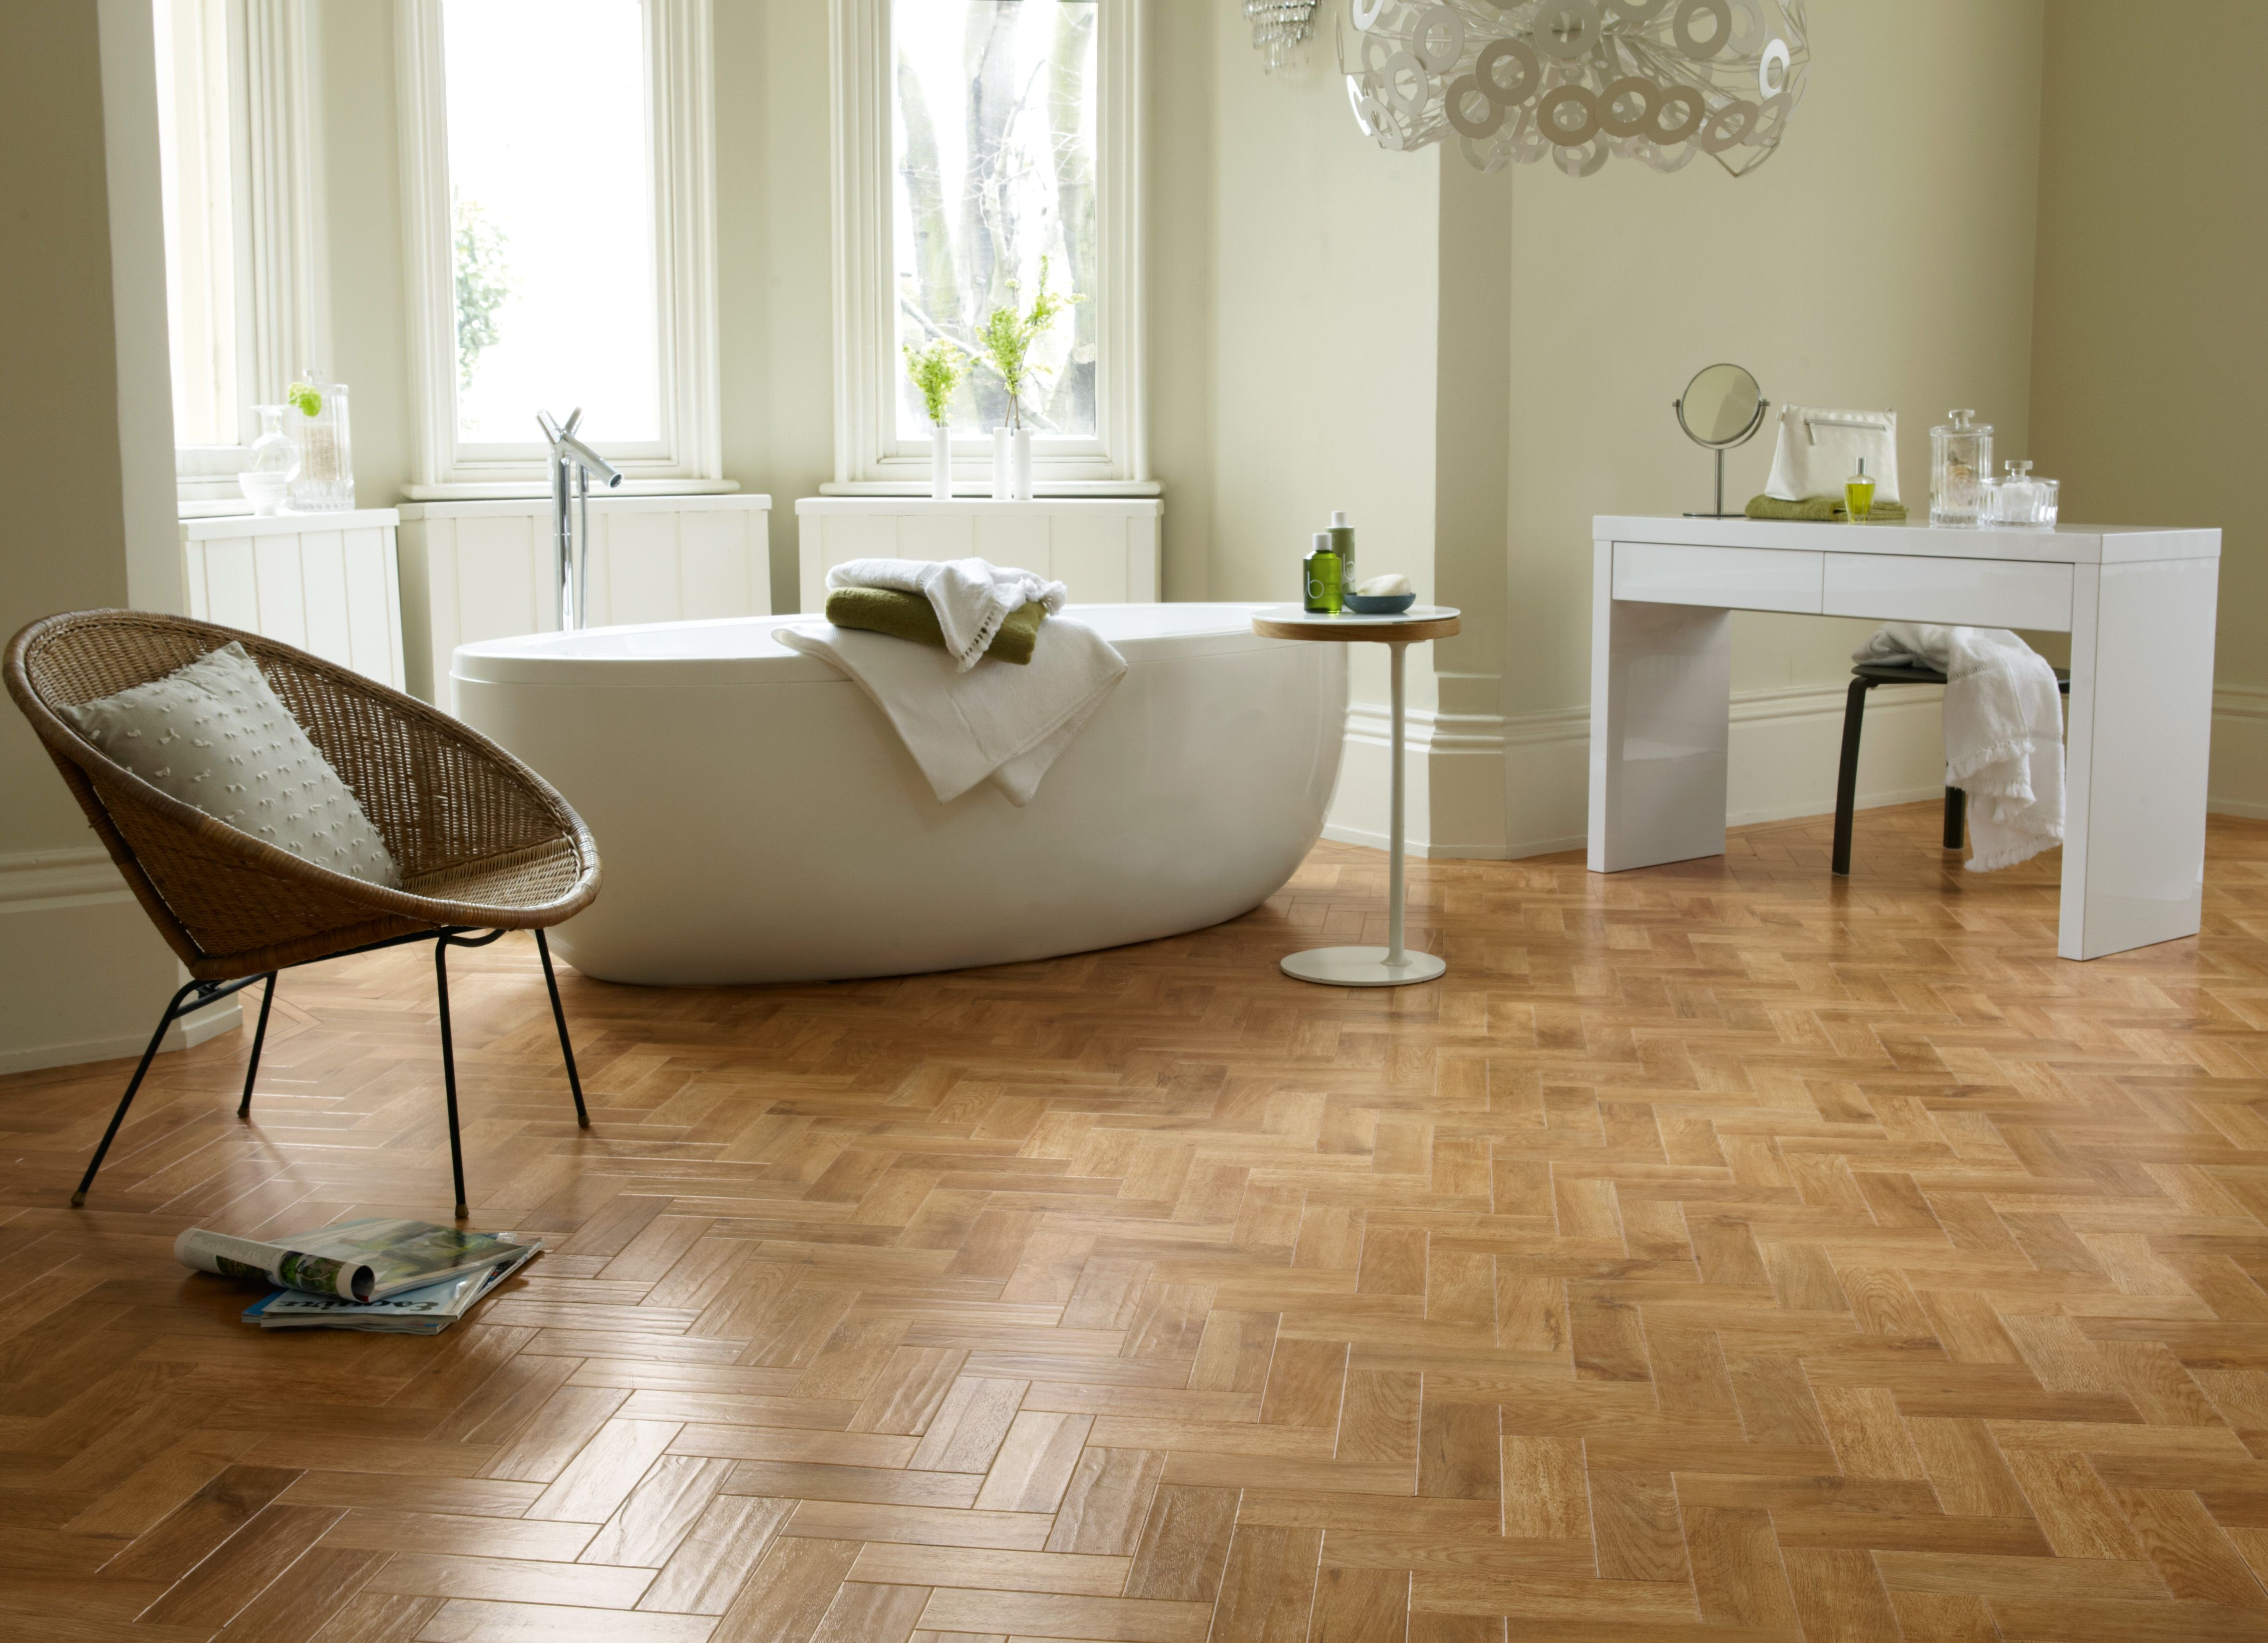 Karndean Art Select Range AP01 Blond Oak Vinyl flooring